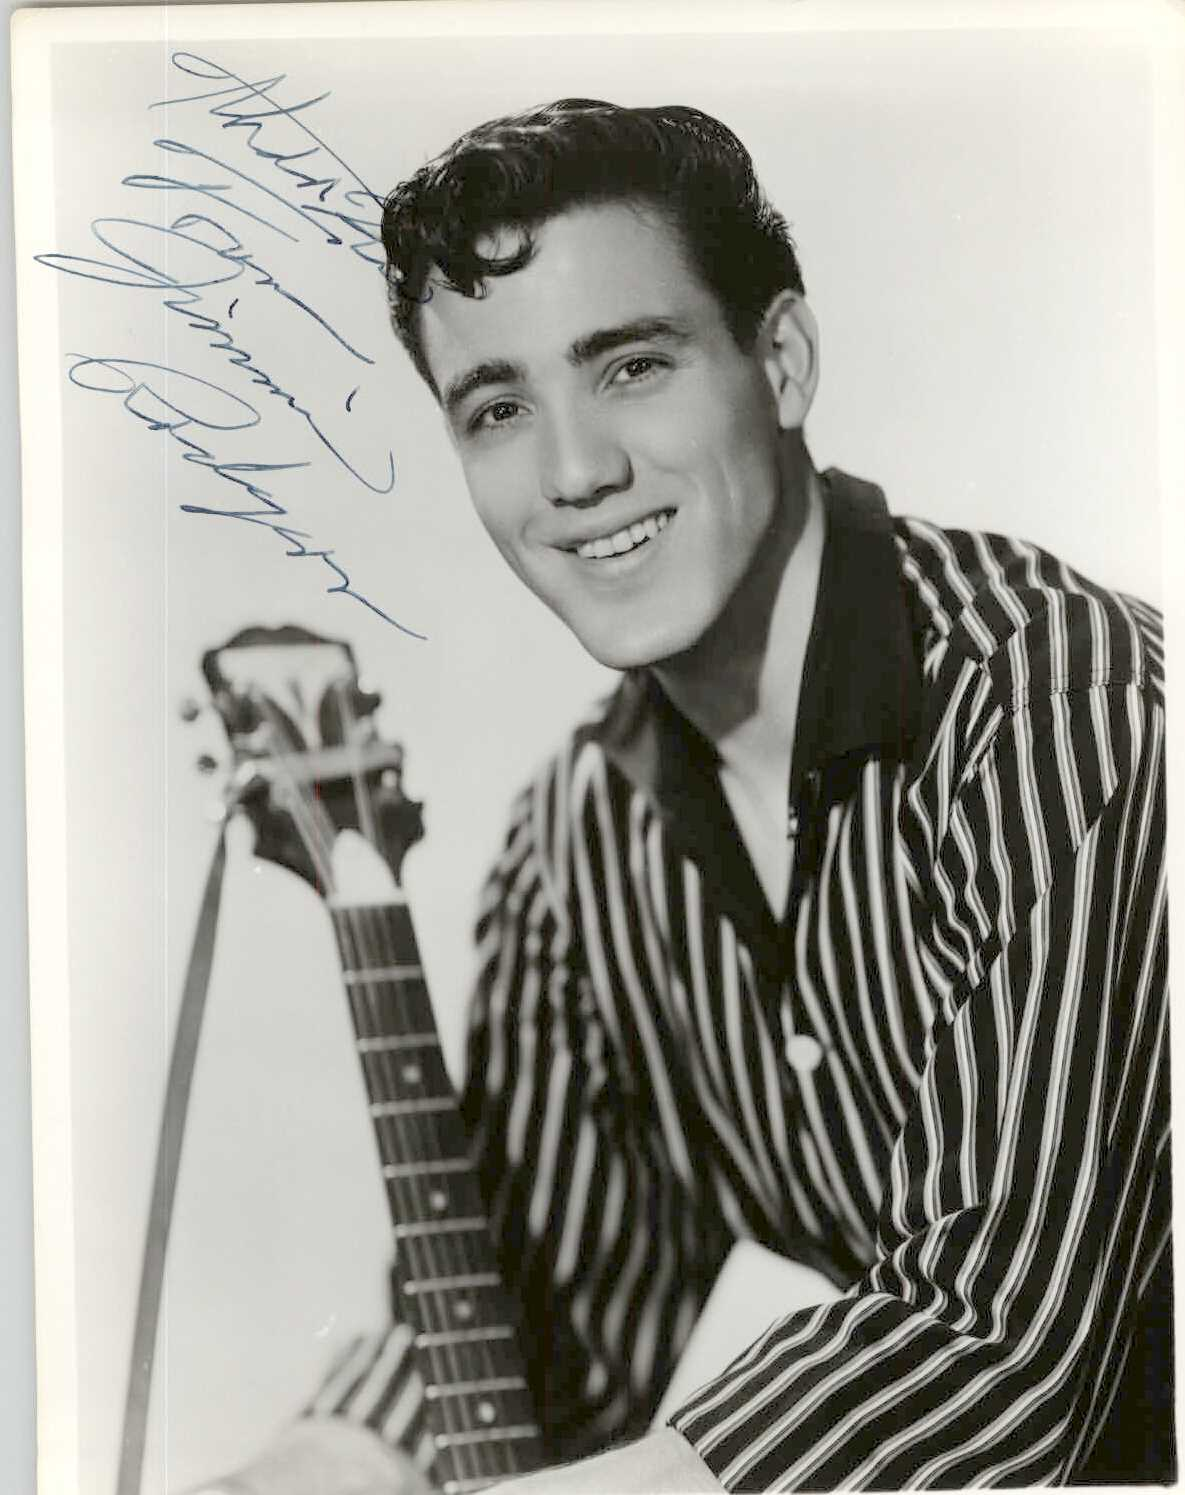 Primary image for Jimmie Rodgers Signed Autographed Vintage Glossy 8x10 Photo